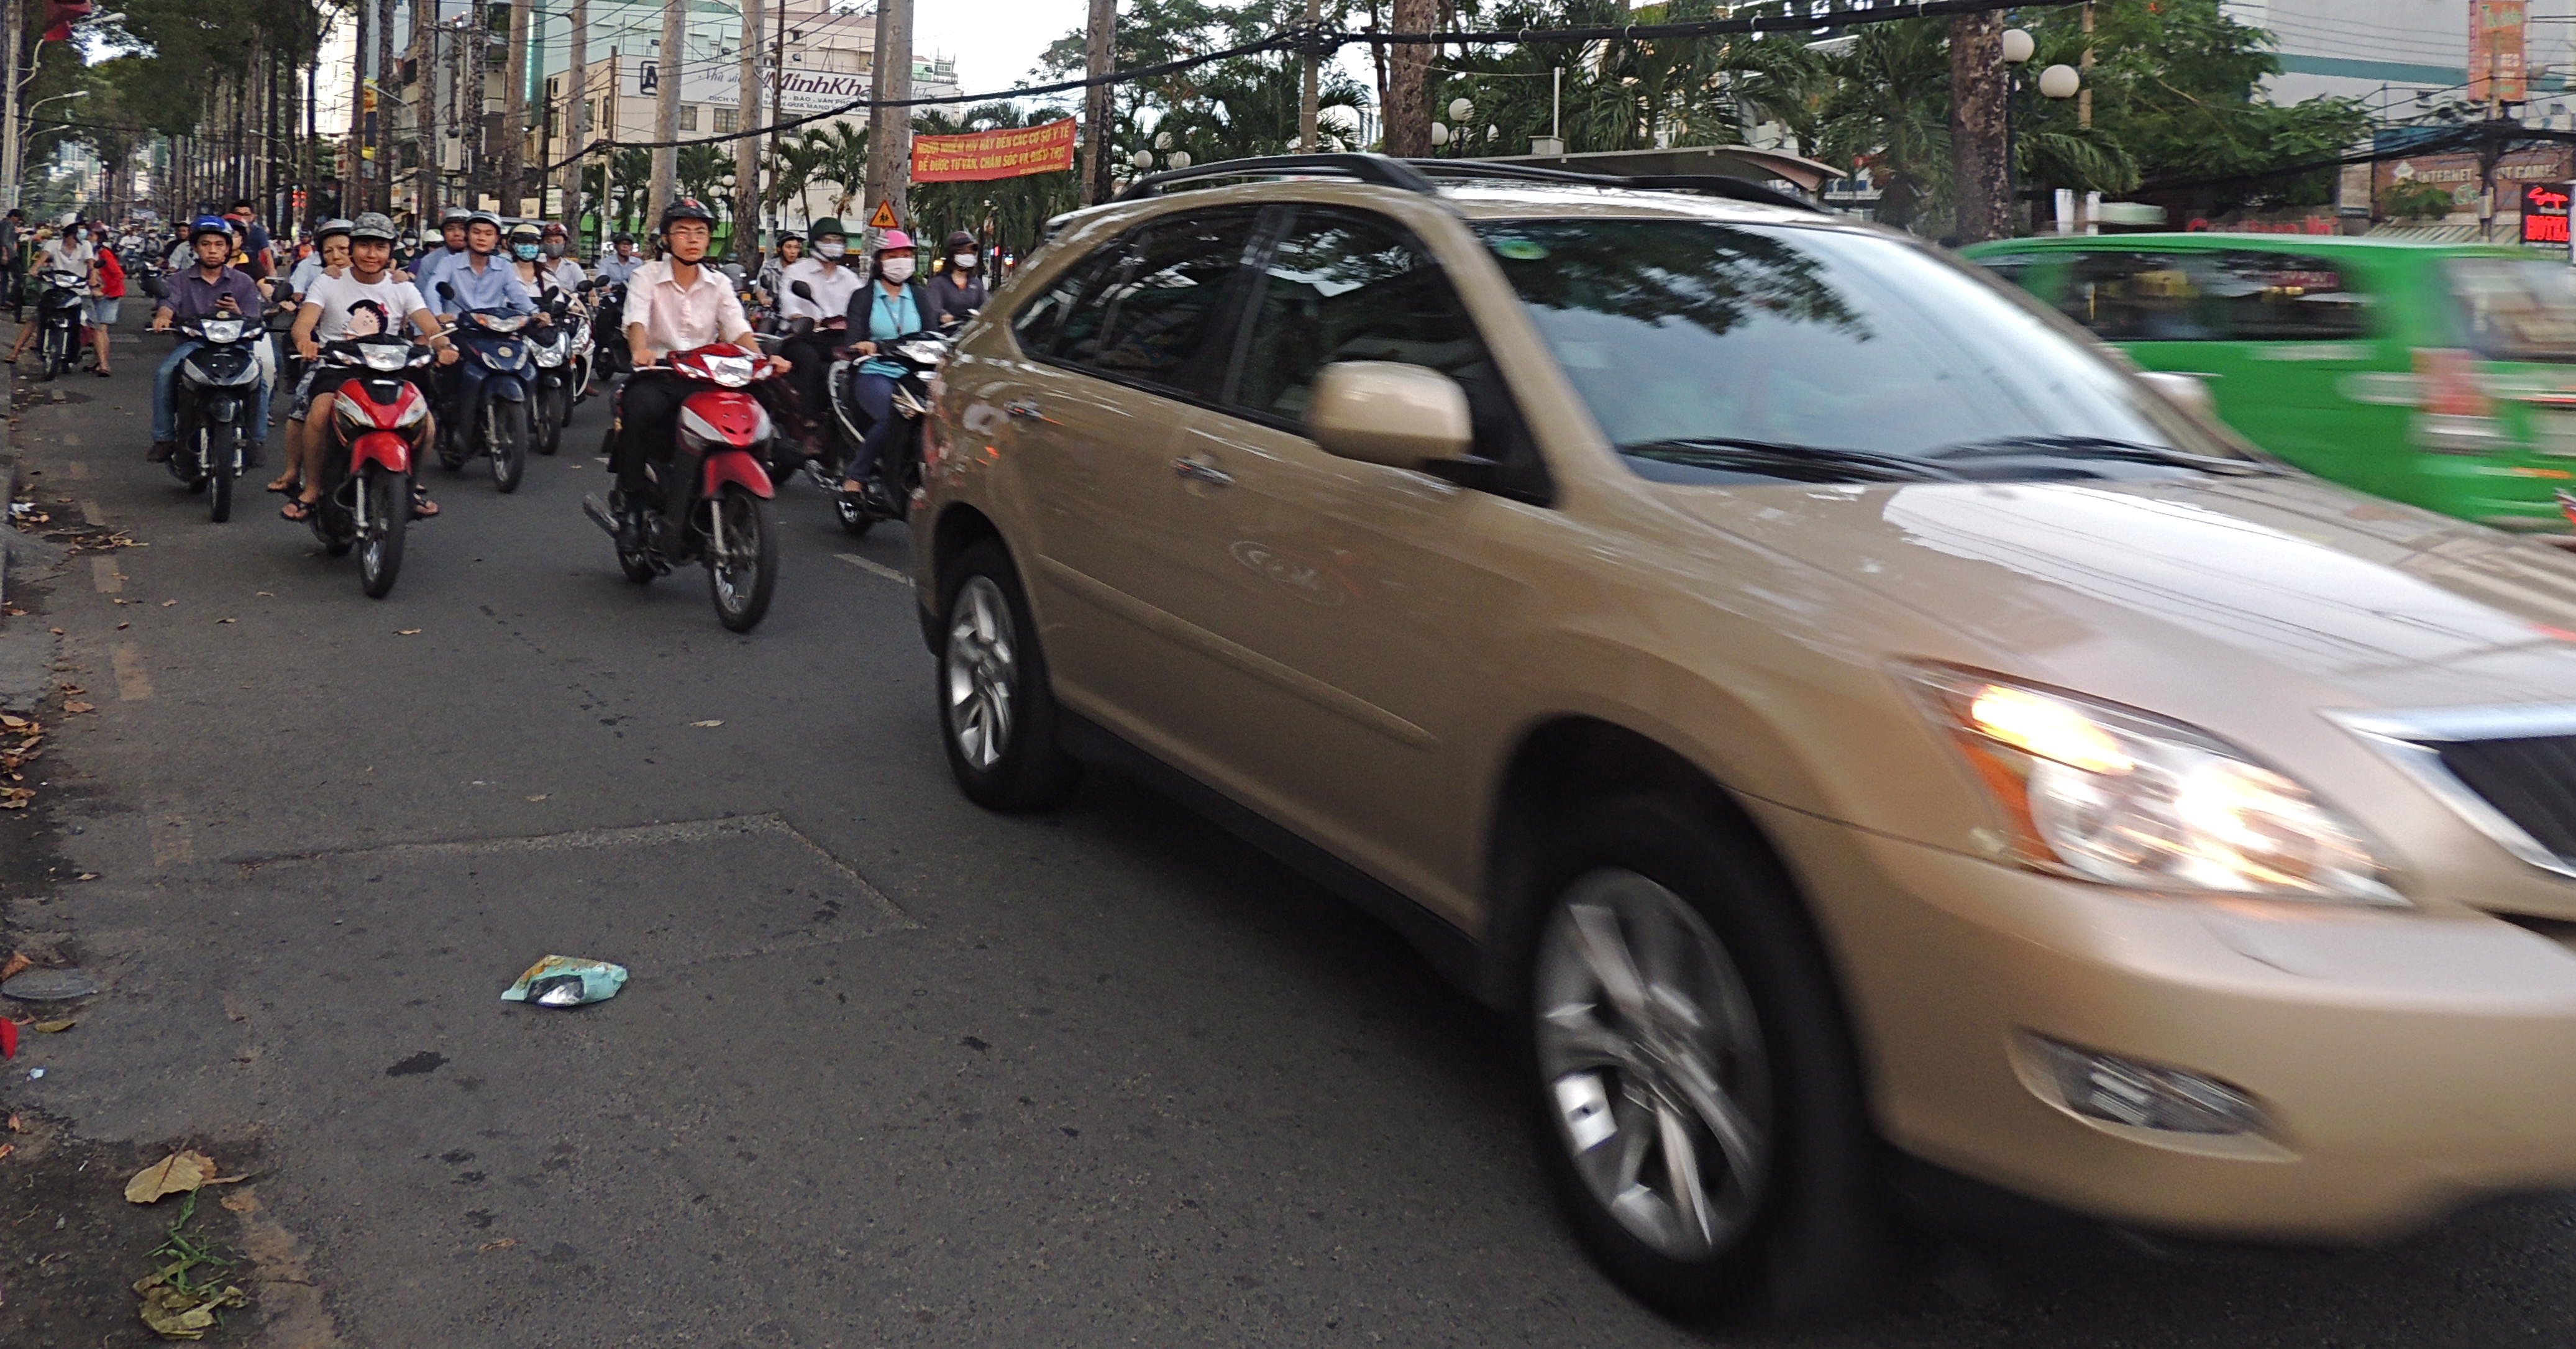 Cars are a rarity on the roads. Motorbikes are the more immediate concern when crossing the street.